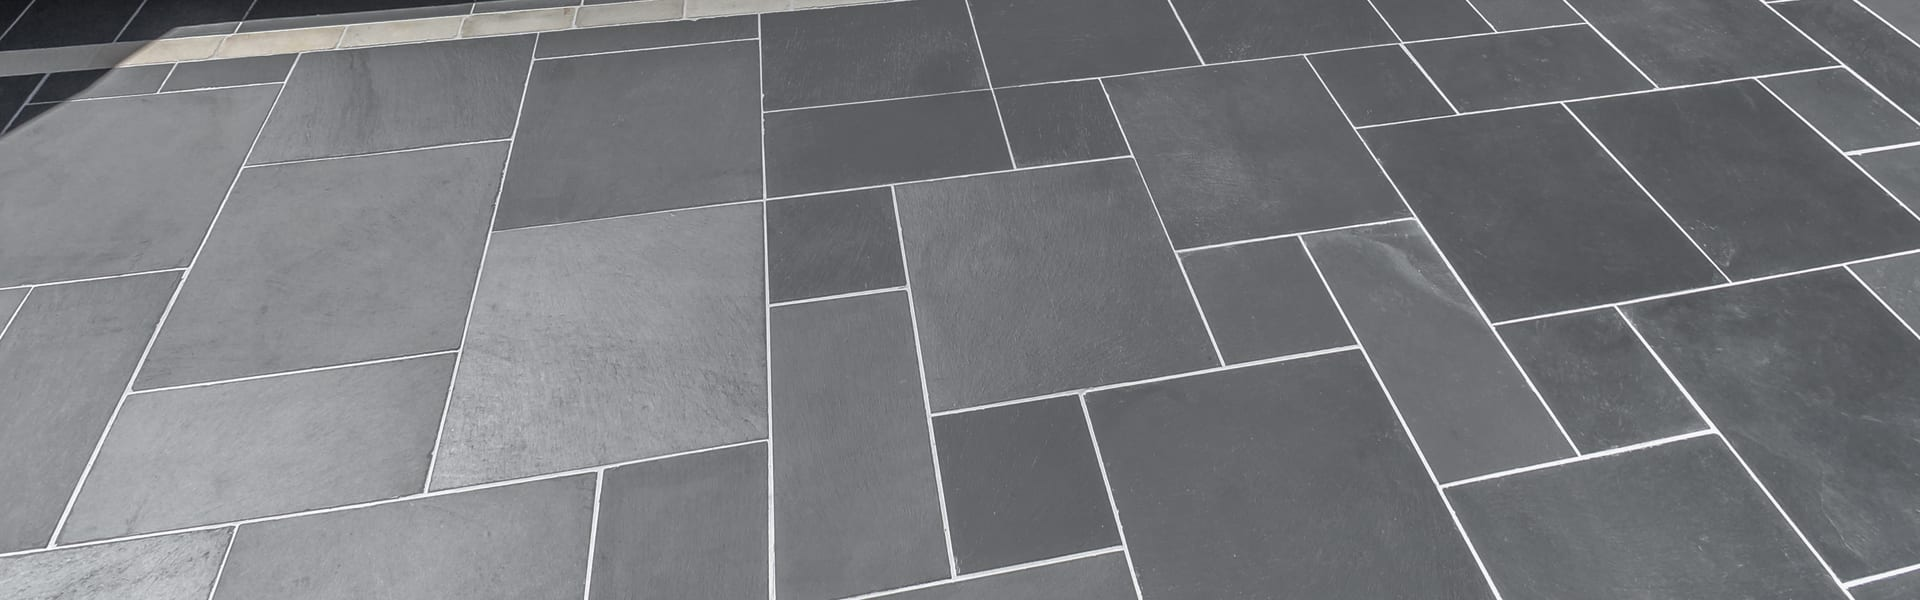 Marshalls Natural Slate Paving in blue